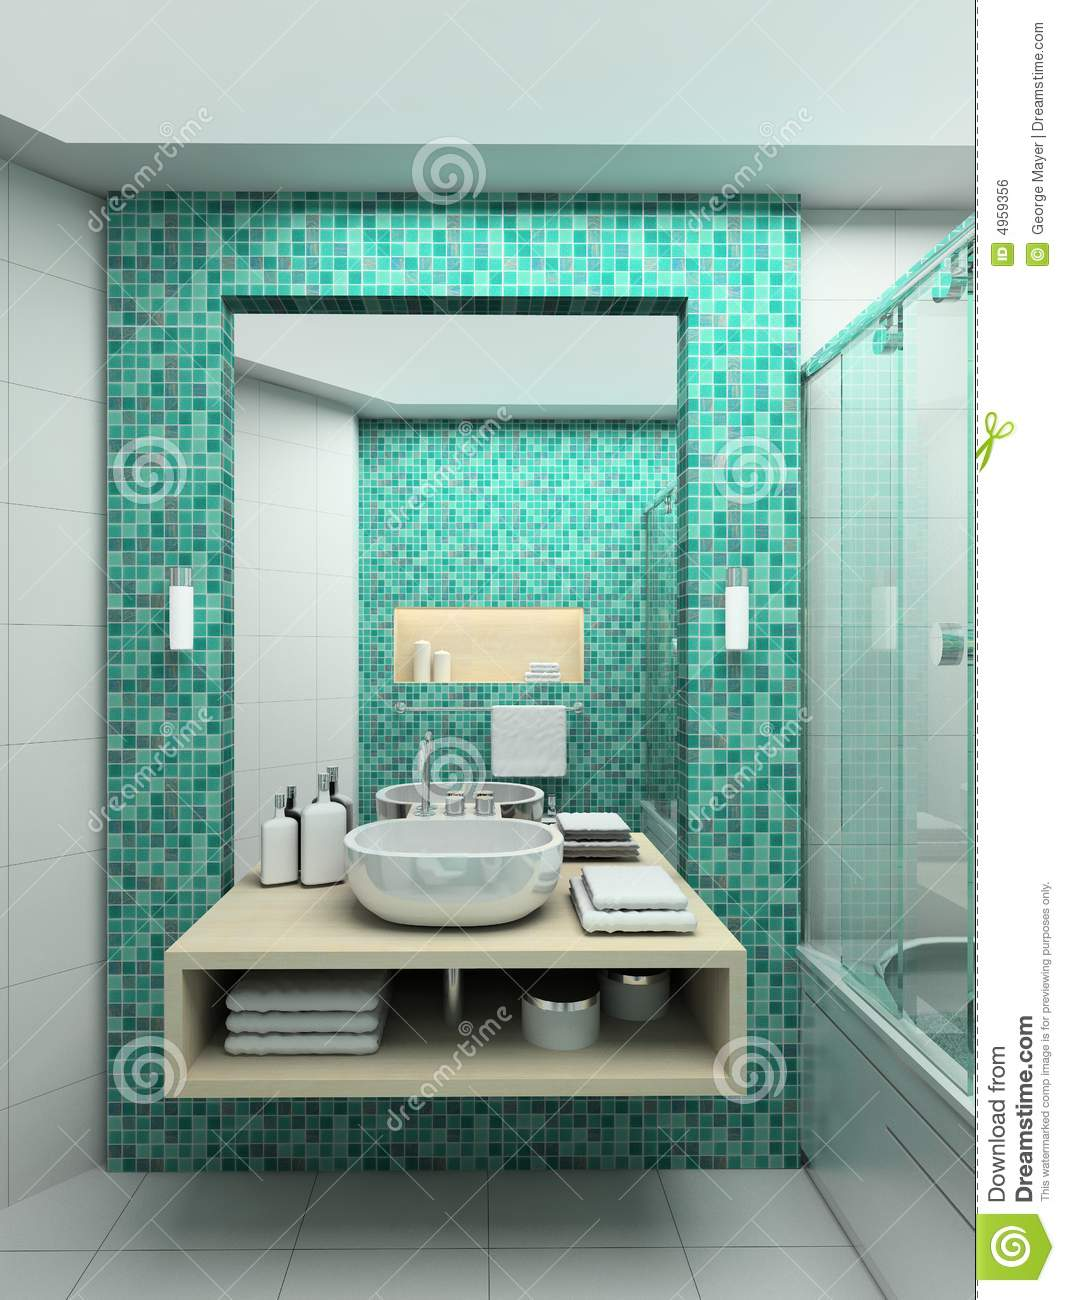 Cool lights for bathroom vanity picture best bathroom for 3d bathroom planner